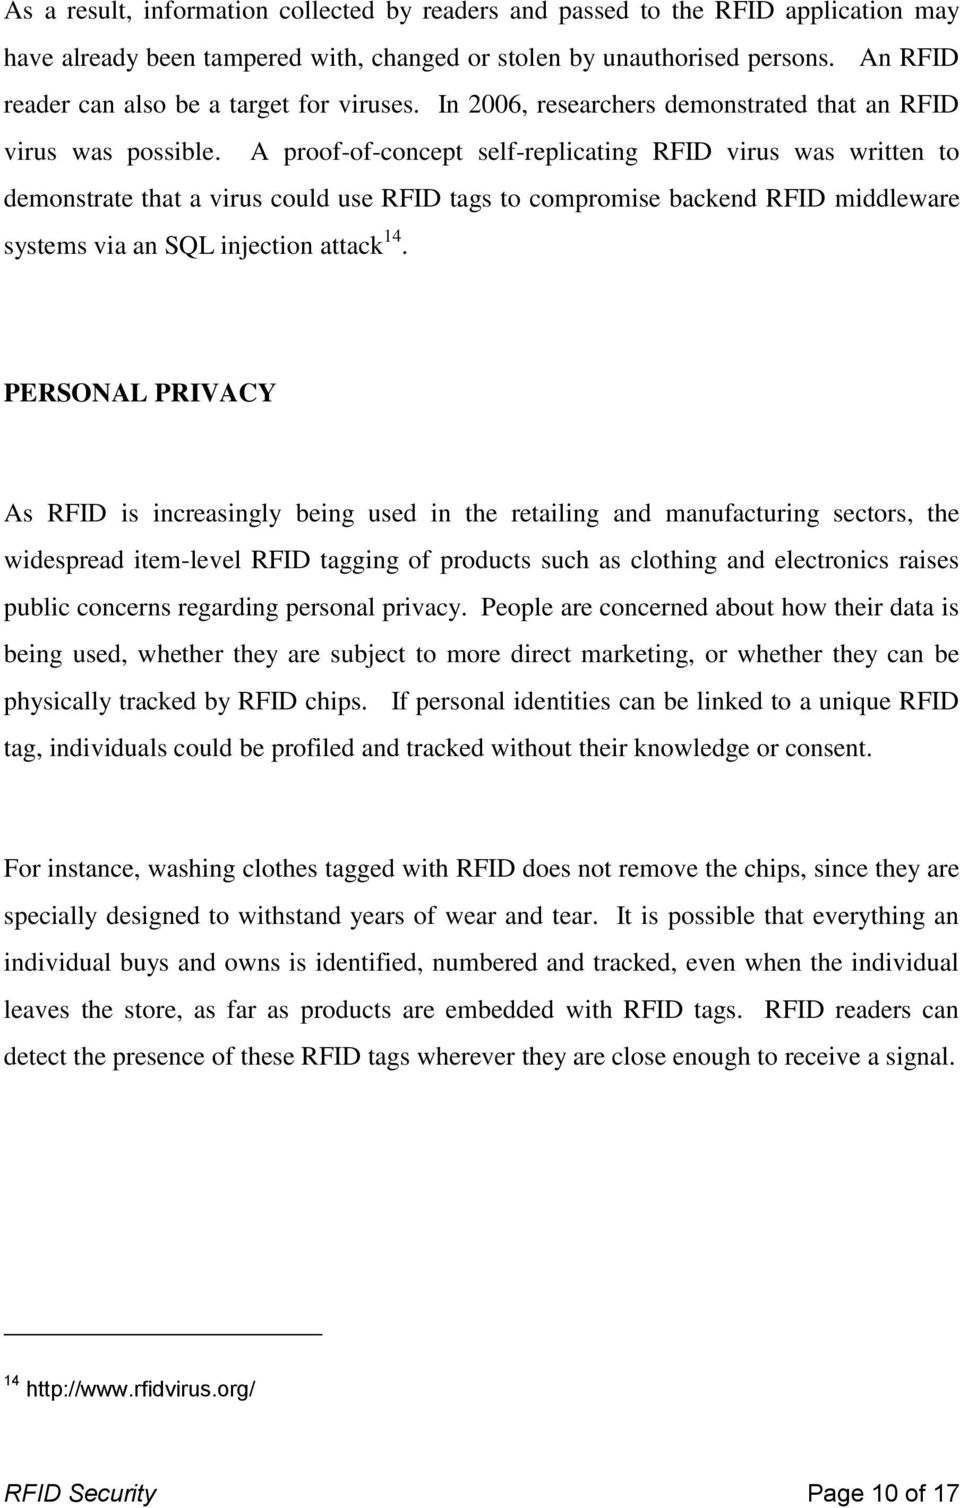 A proof-of-concept self-replicating RFID virus was written to demonstrate that a virus could use RFID tags to compromise backend RFID middleware systems via an SQL injection attack 14.